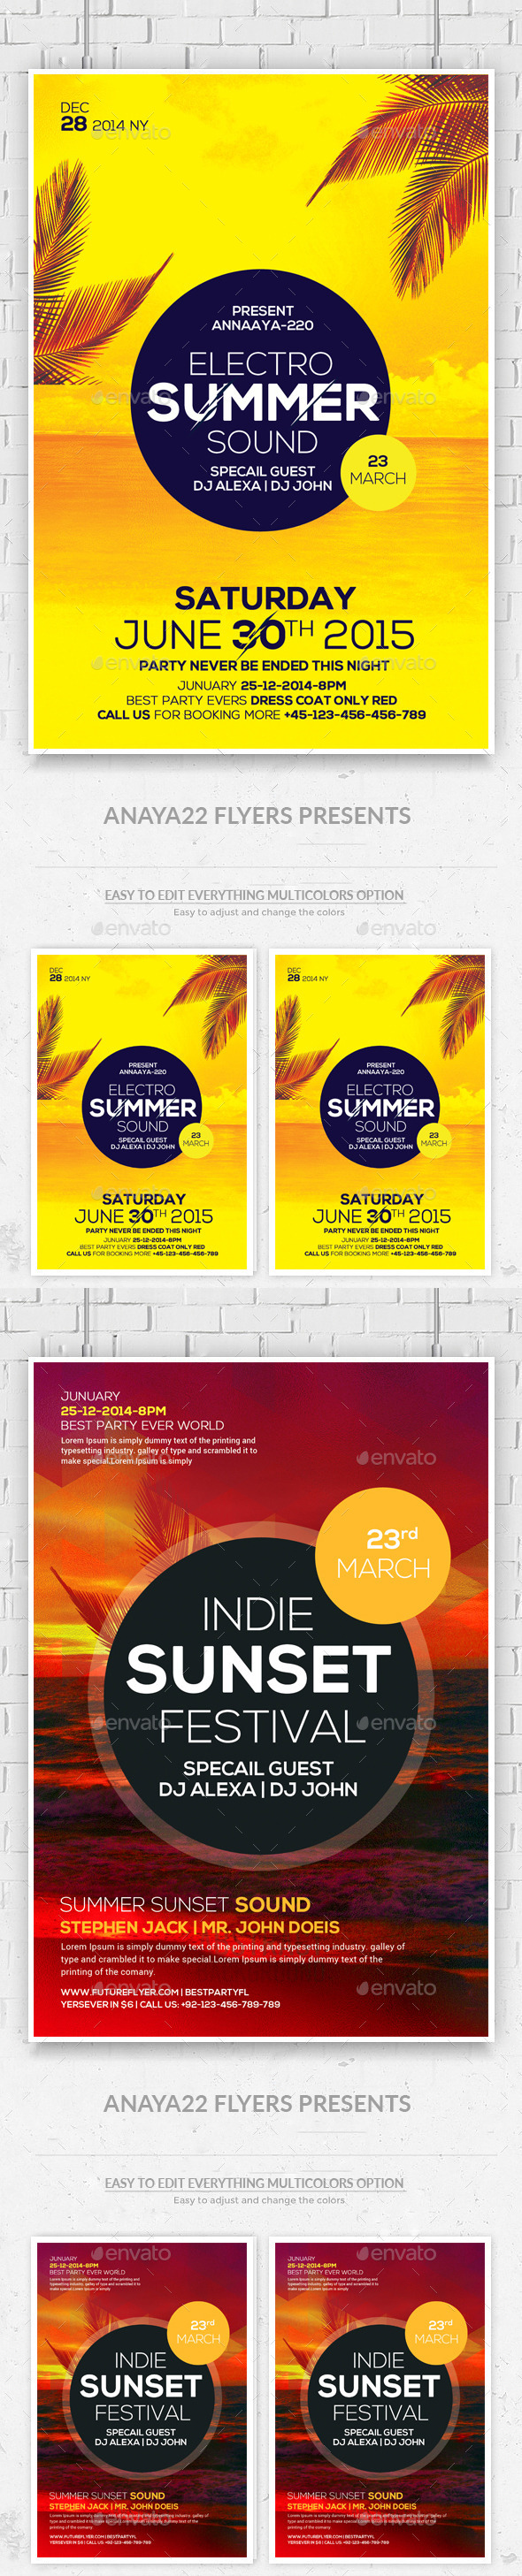 Summer House Flyers Bundle Template - Clubs & Parties Events